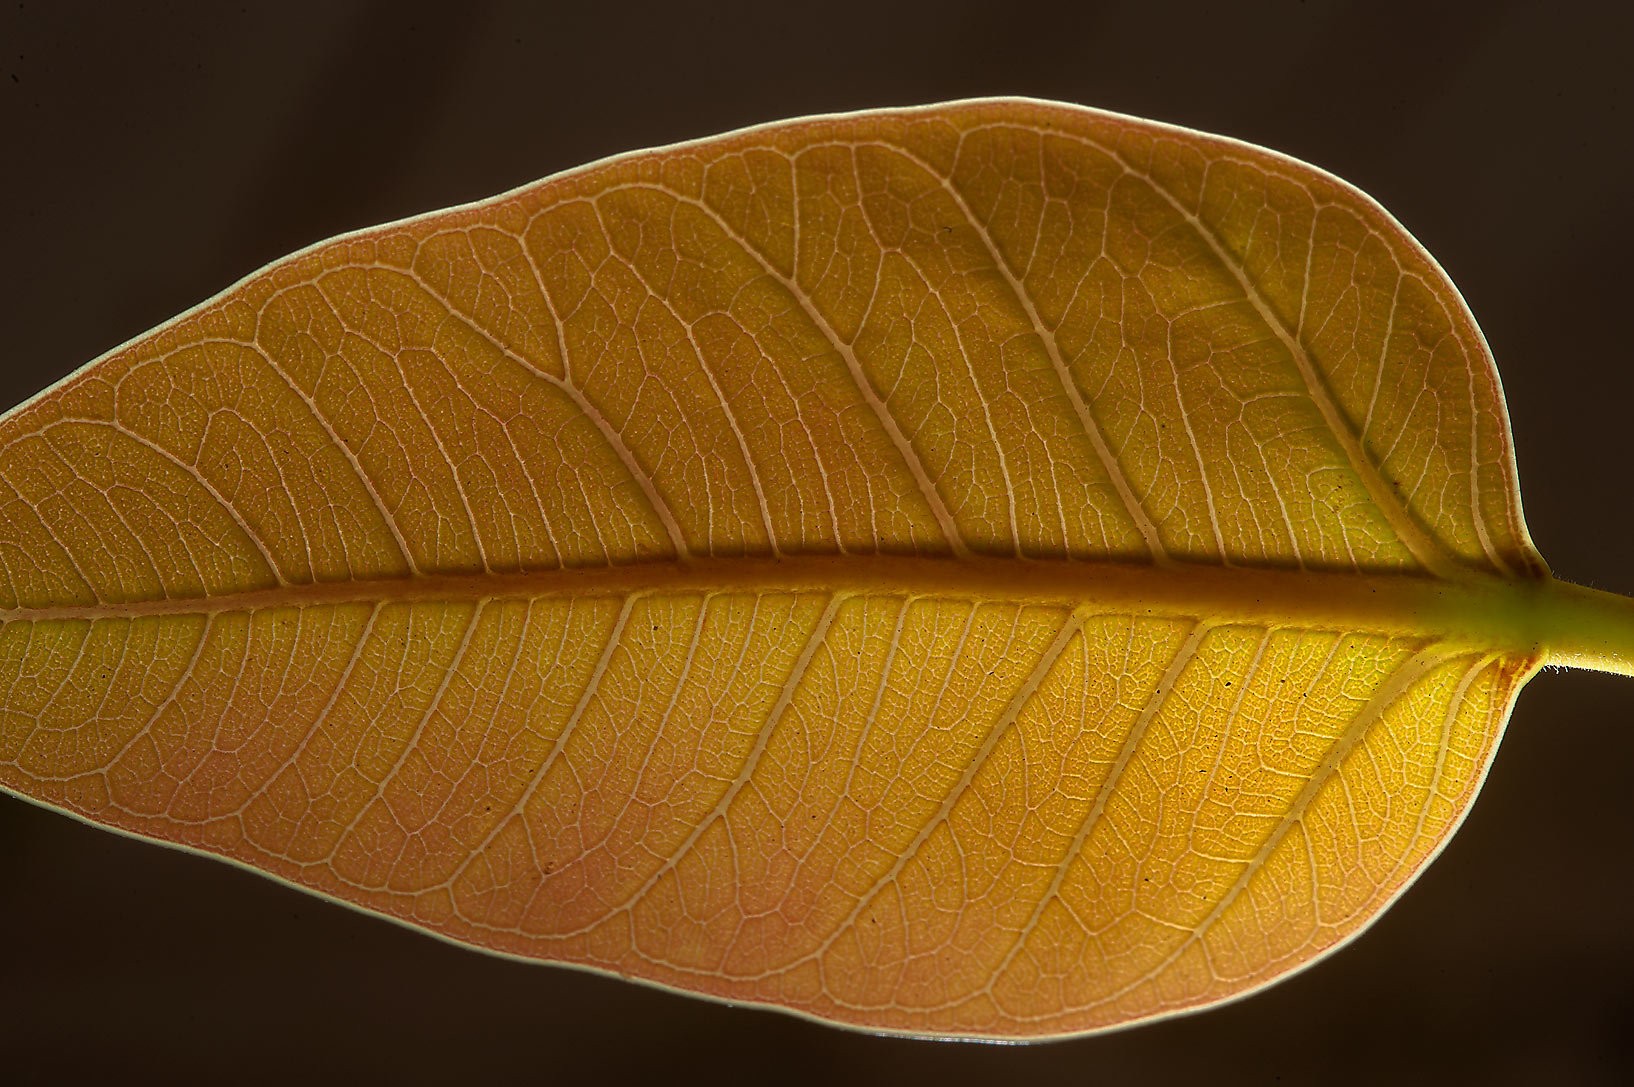 Leaf of Banyan (Ficus benghalensis) near Al Istiqlal St. near West Bay. Doha, Qatar